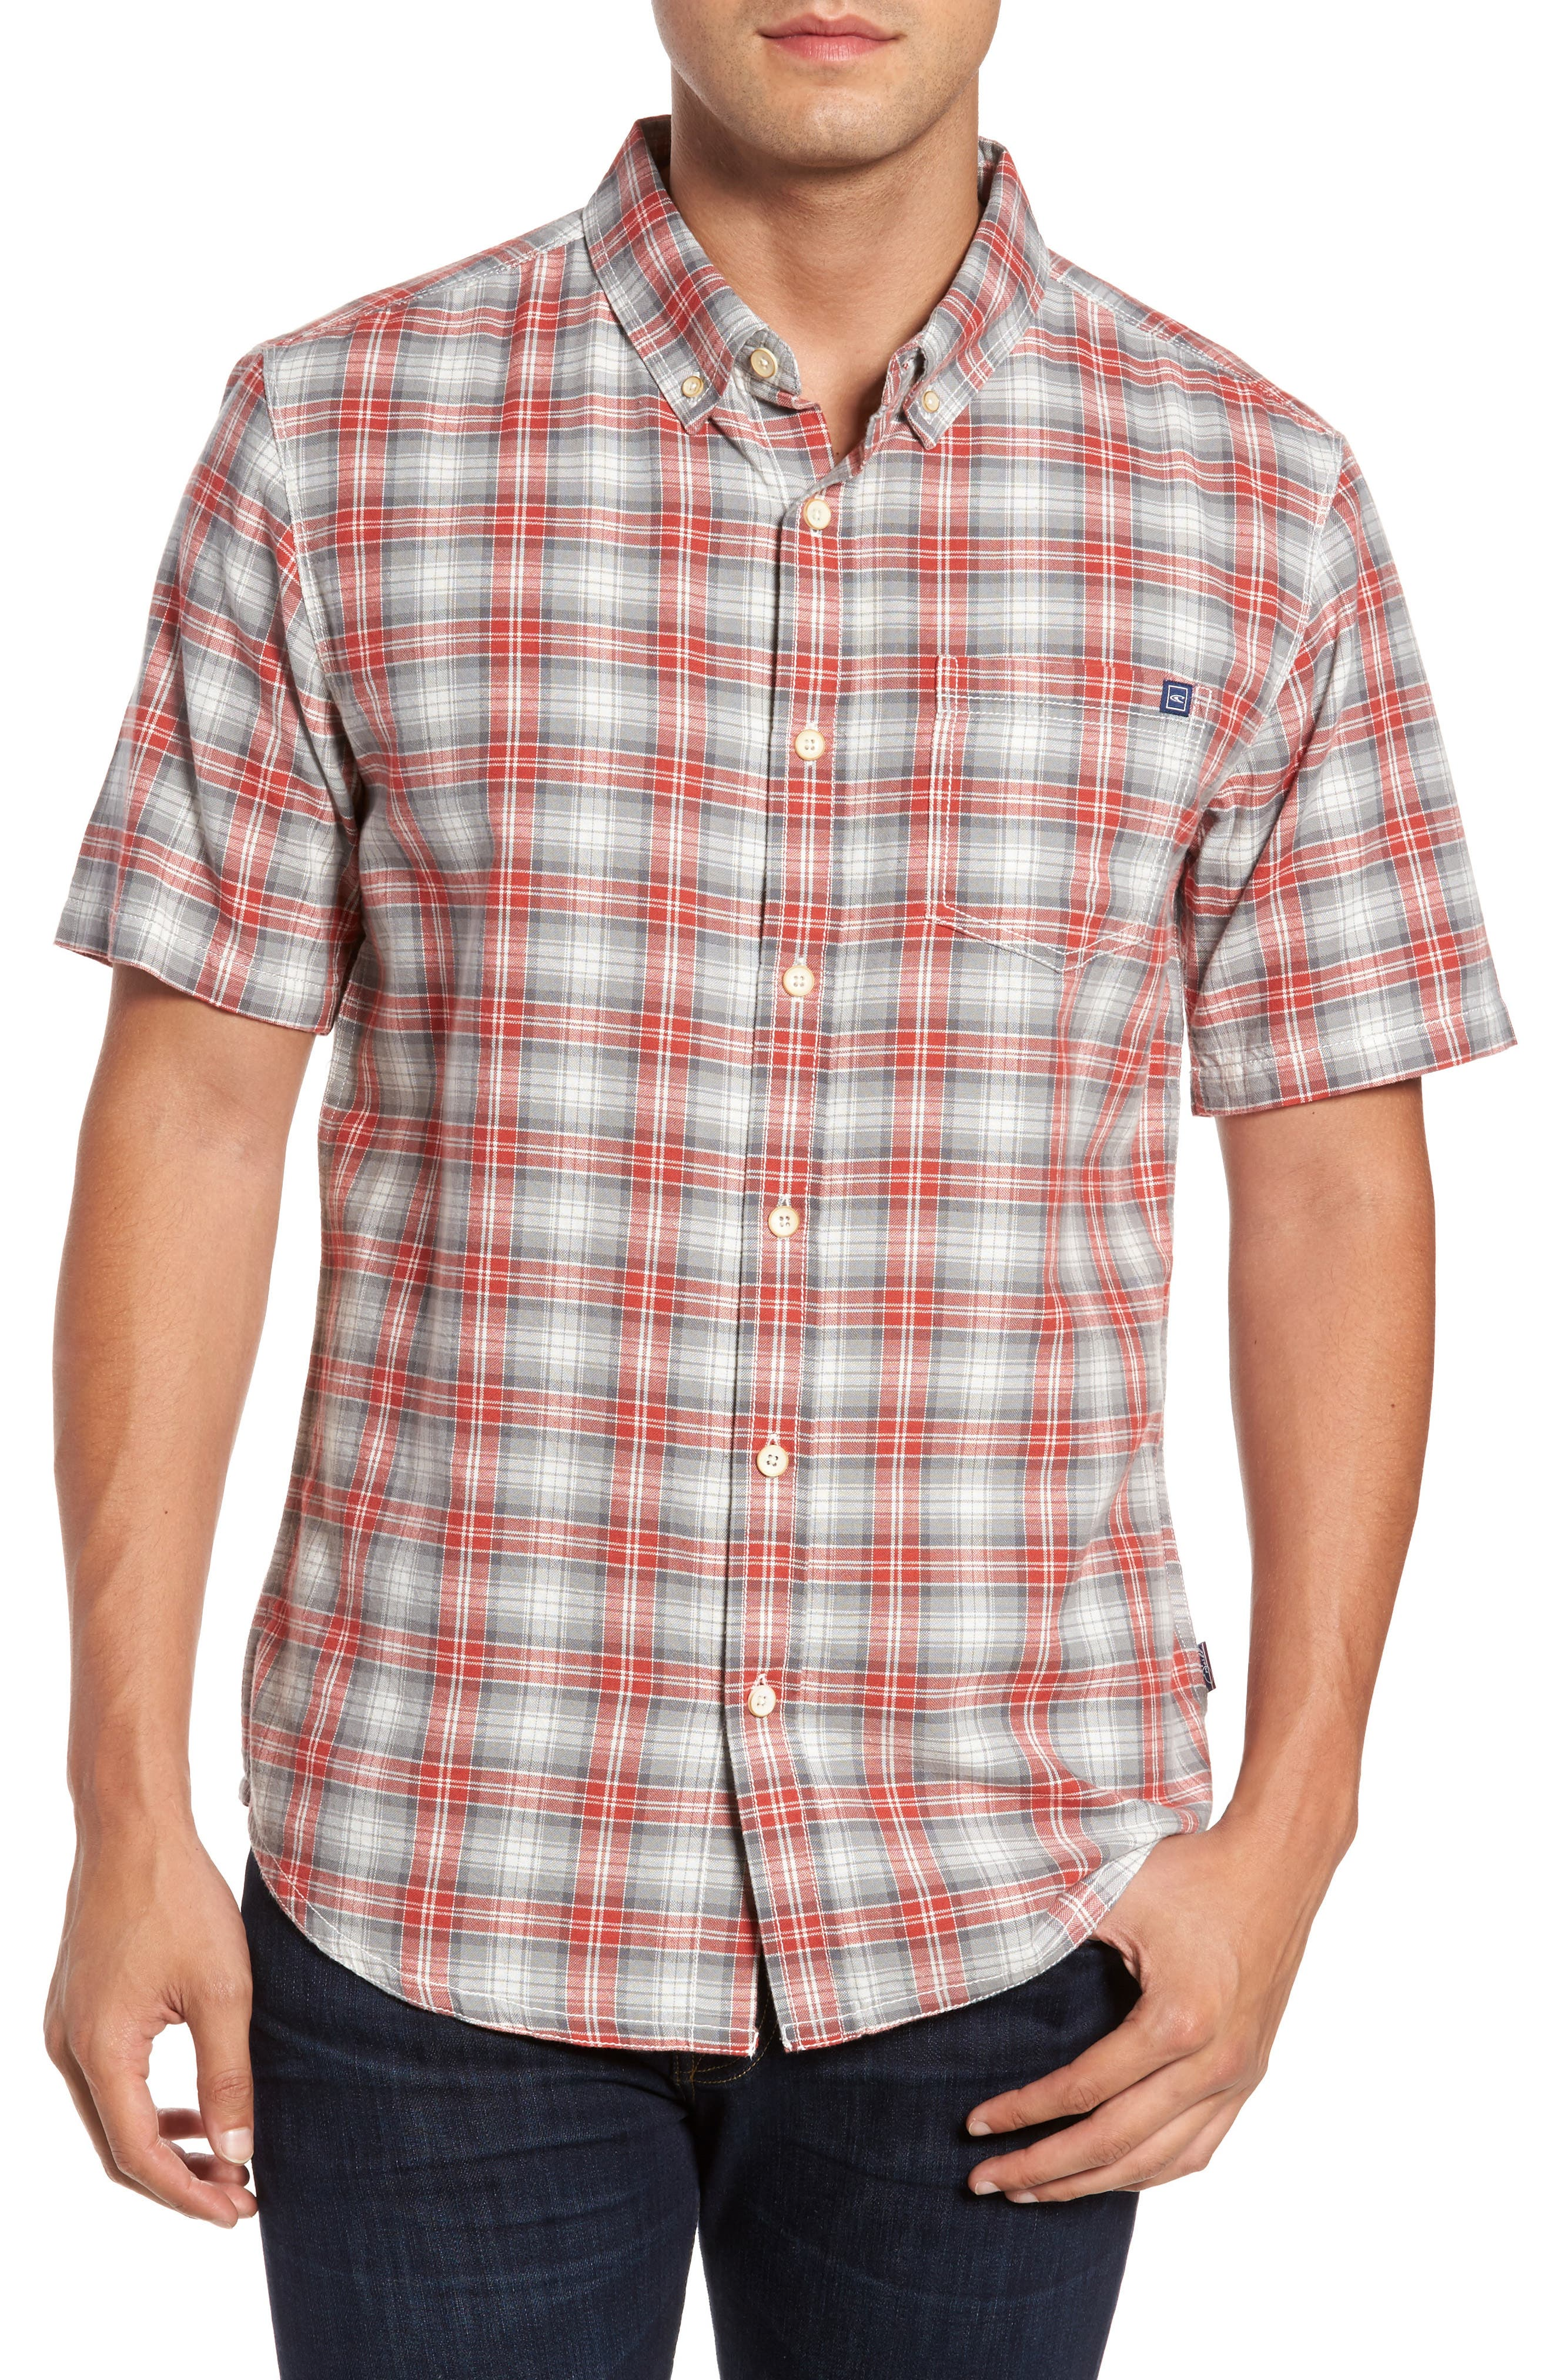 Voyager Plaid Sport Shirt,                         Main,                         color,